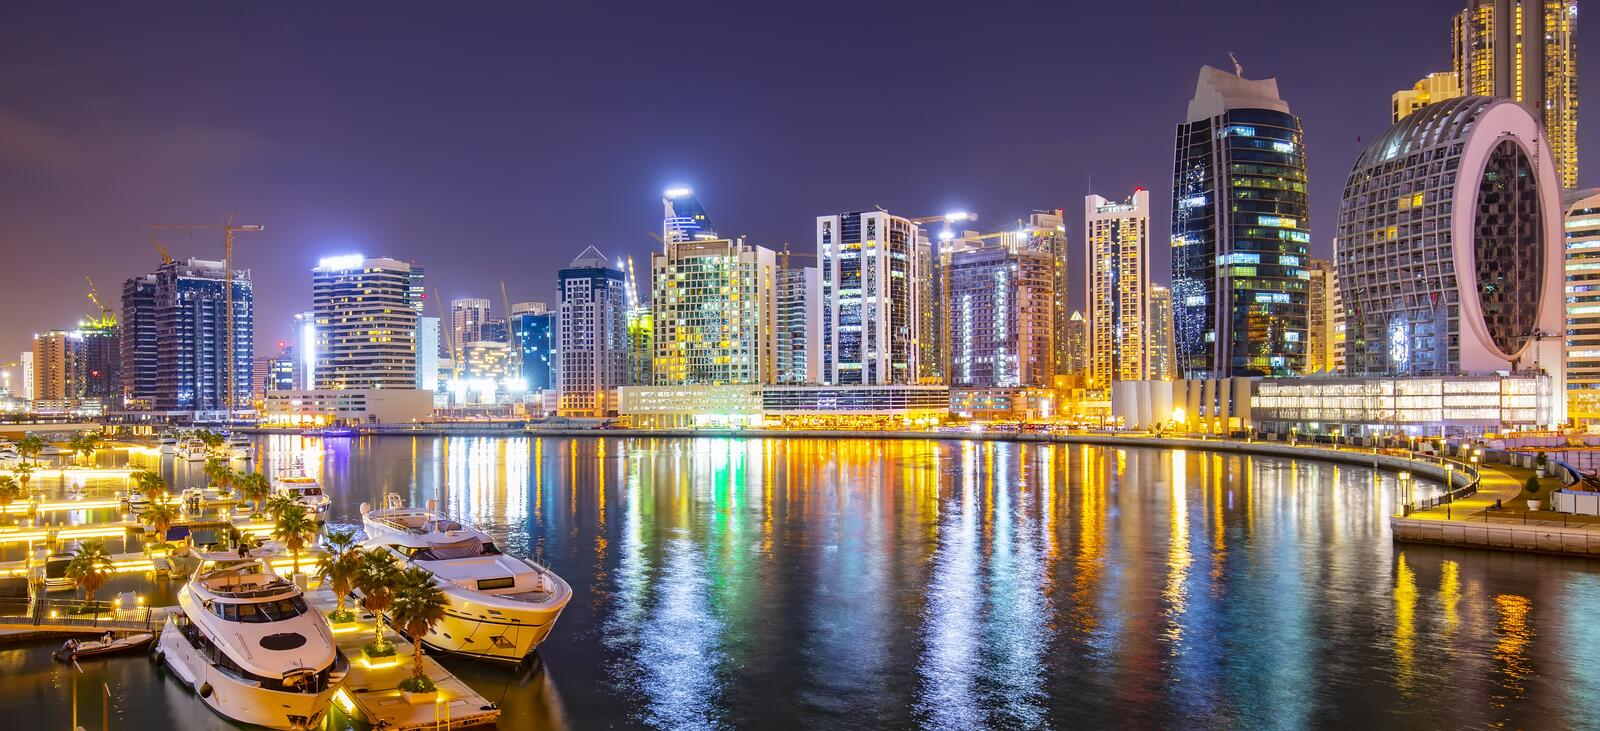 Dubai marina district at night, UAE royalty free stock photography